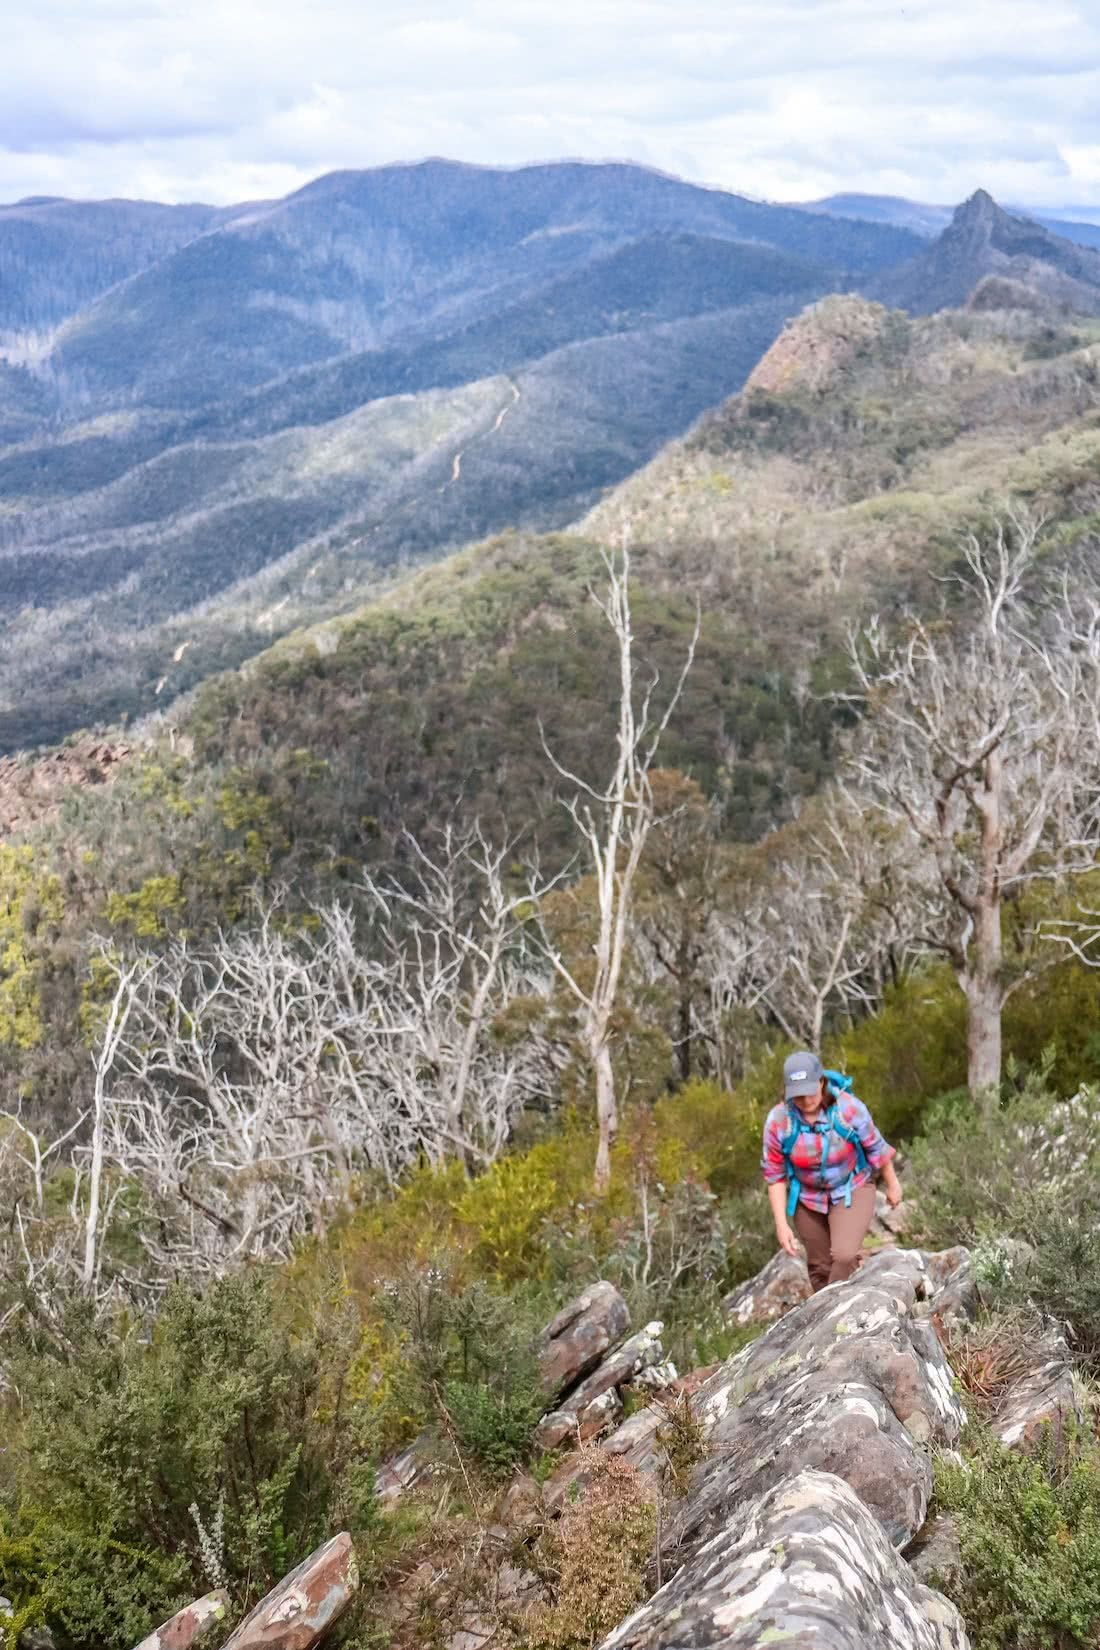 Cathedral Range State Park VIC Chris Paola, trees, ridge, mountains, hiker, woman, summit approach